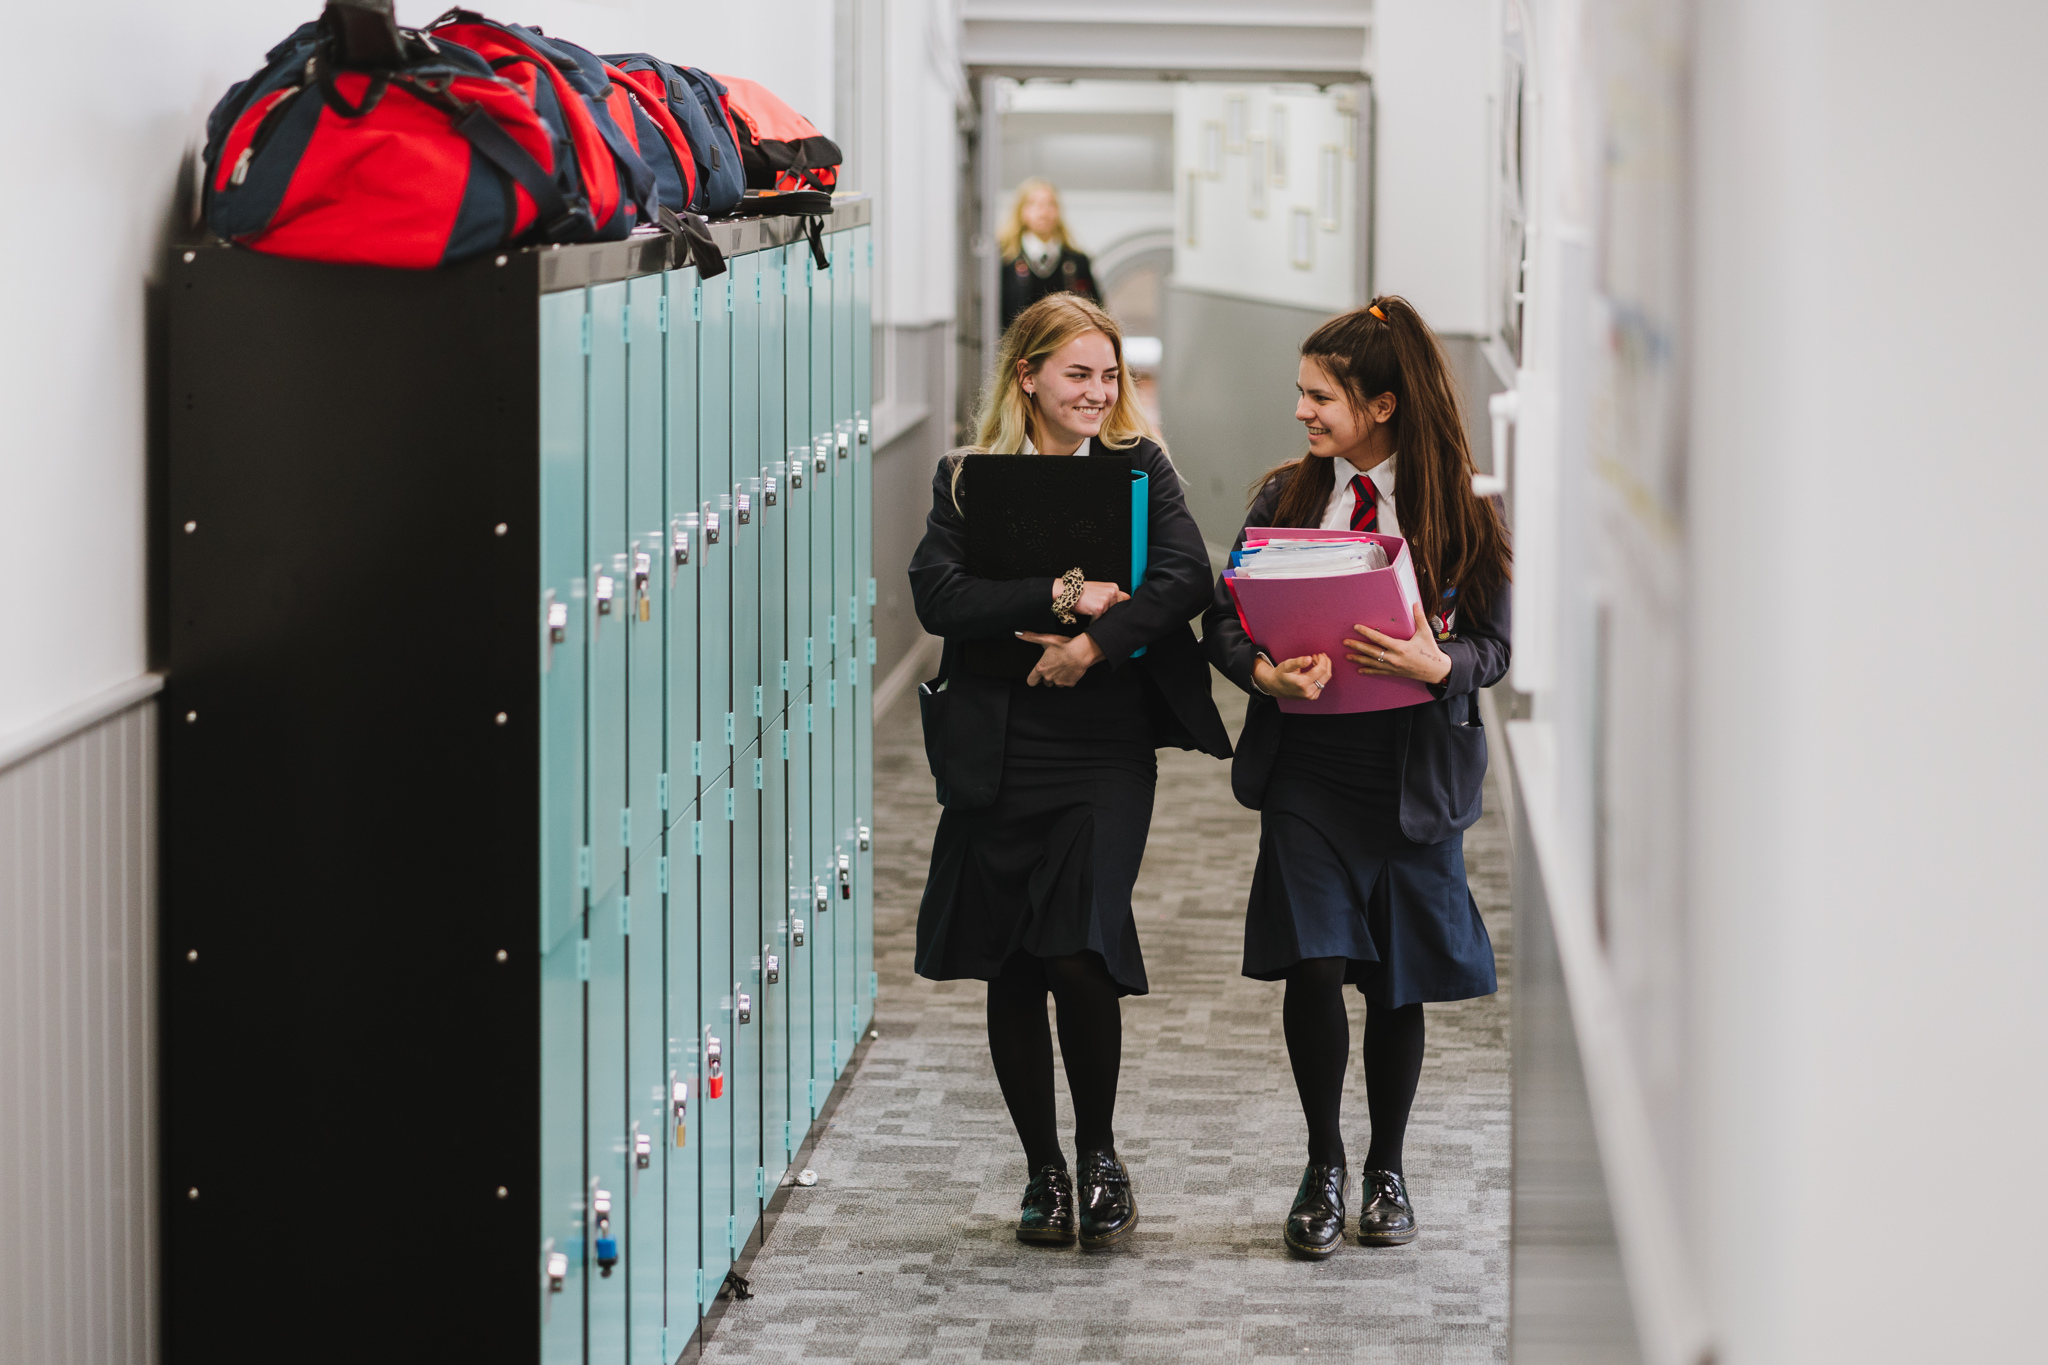 How can pupils purchase uniform when boarding?